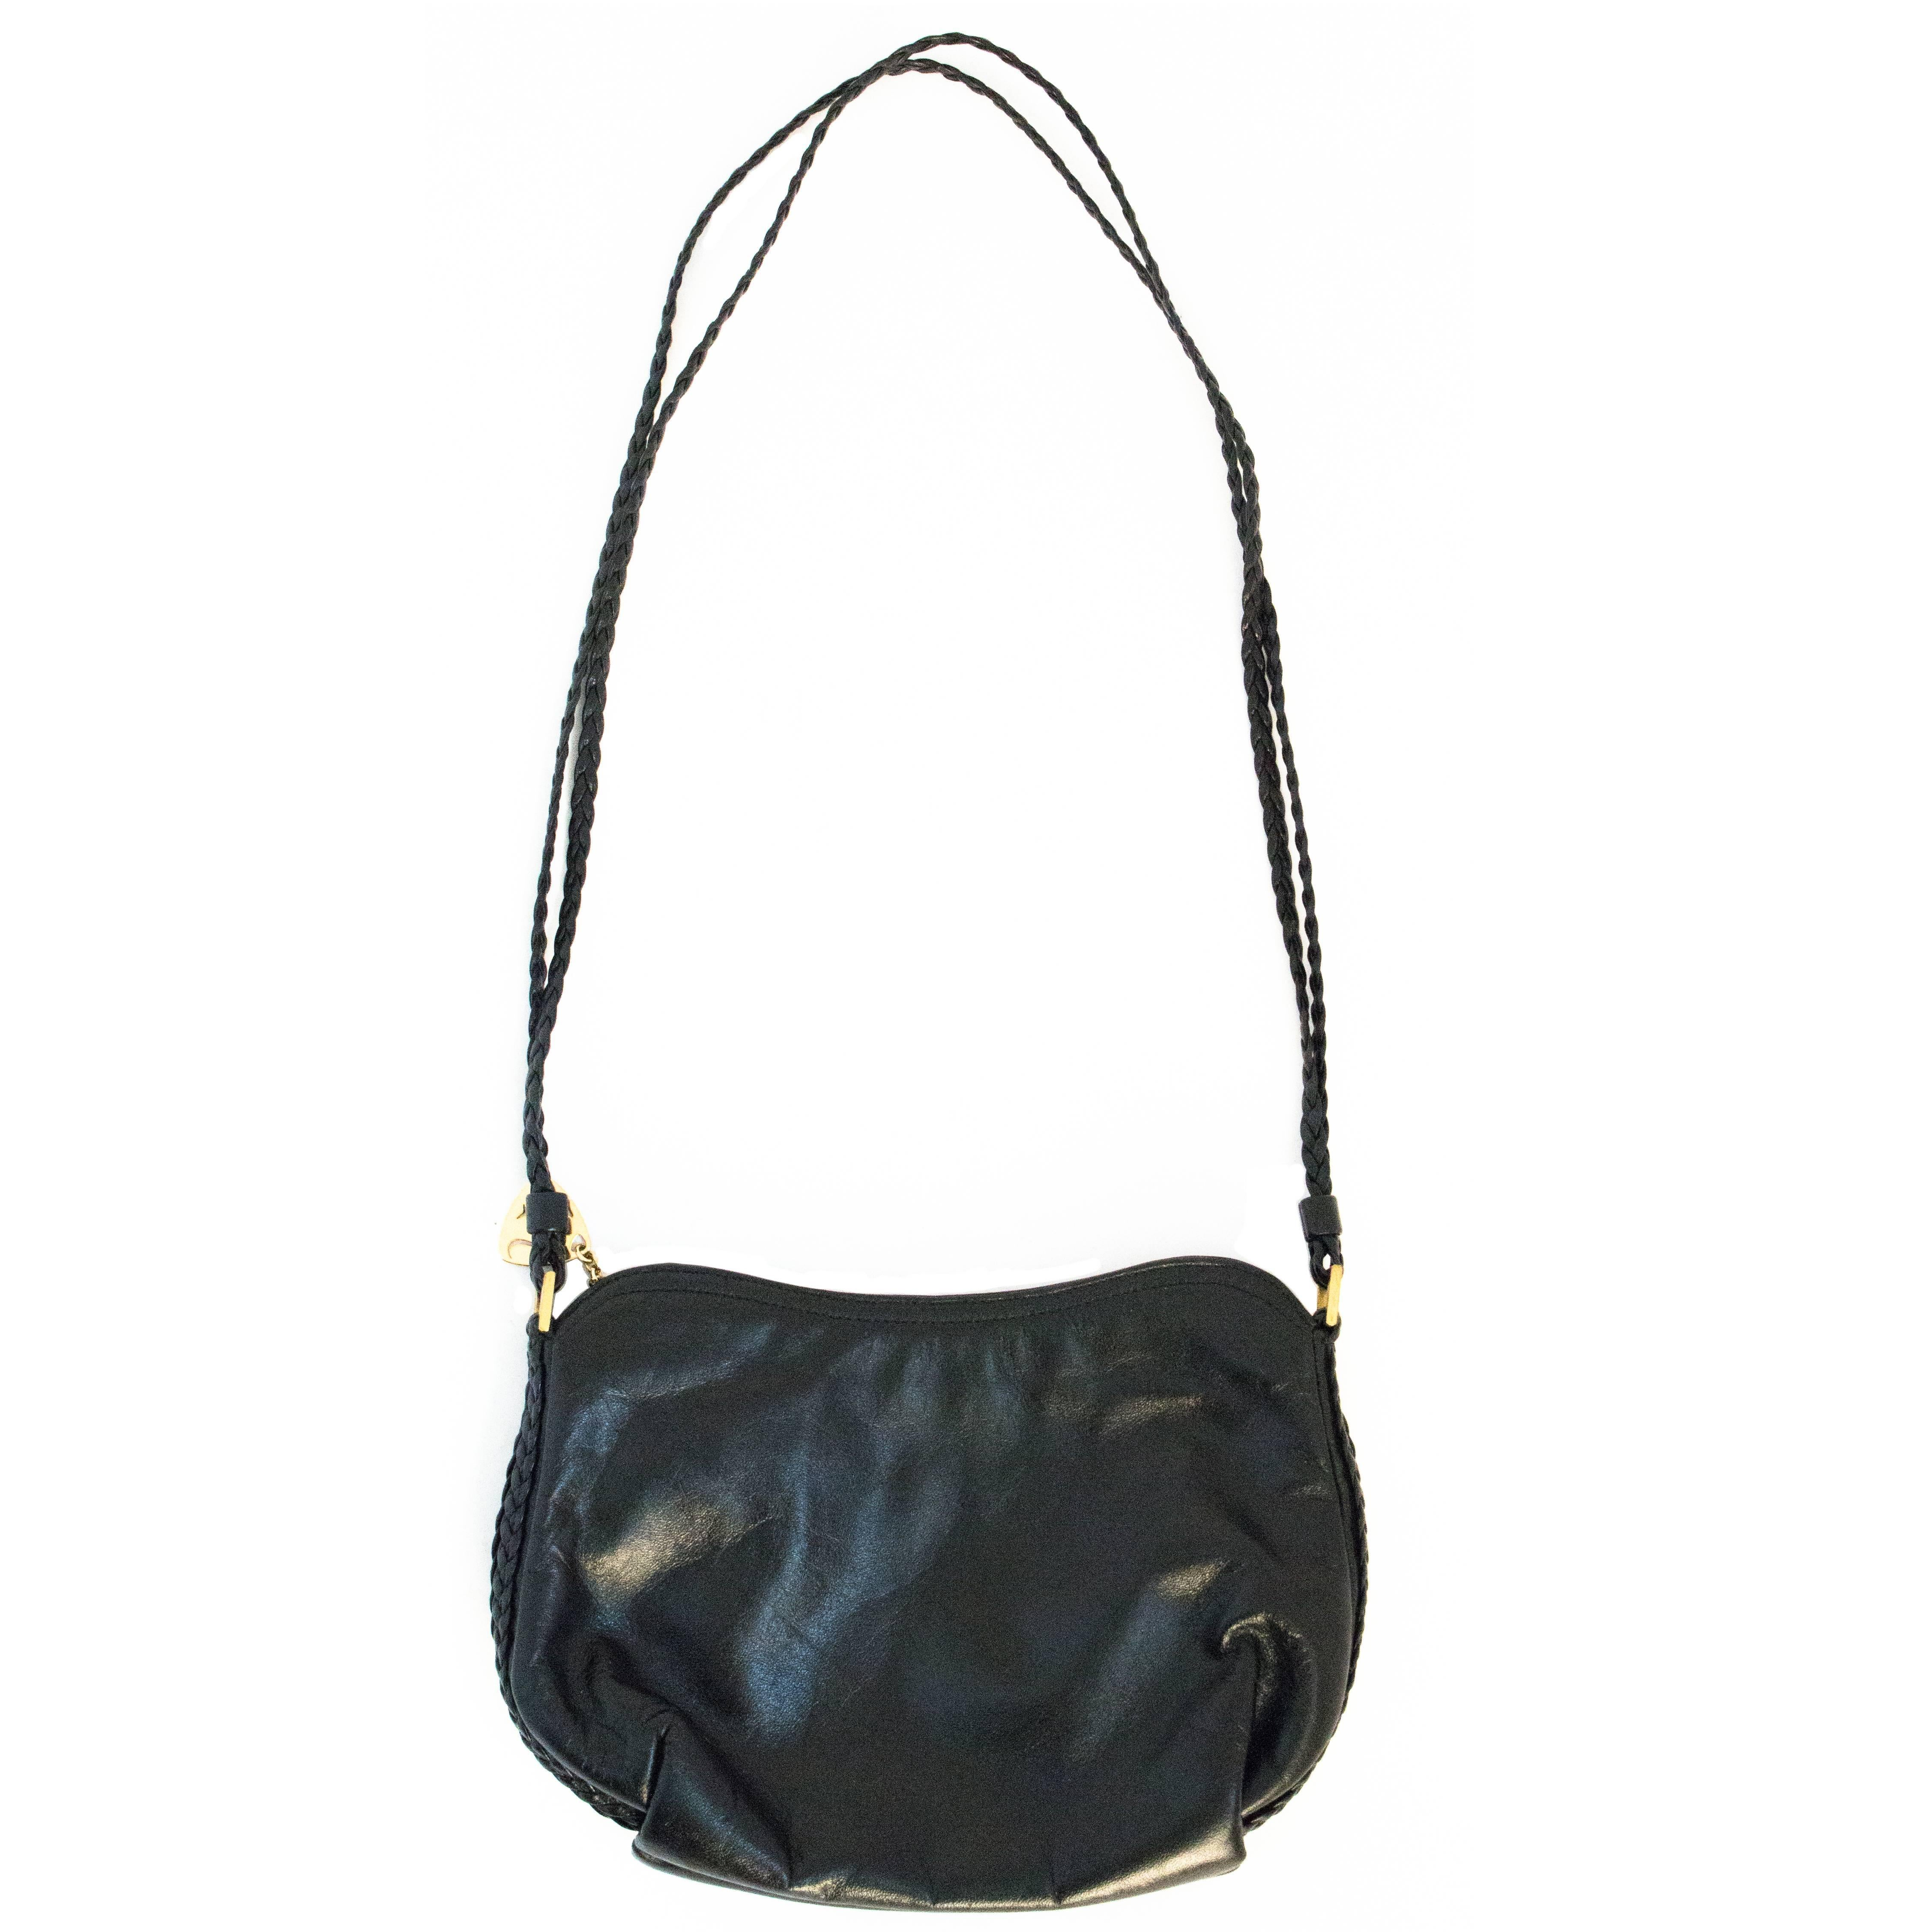 5098a7f1a8d764 80s Black Leather Morris Moskowitz Purse For Sale at 1stdibs